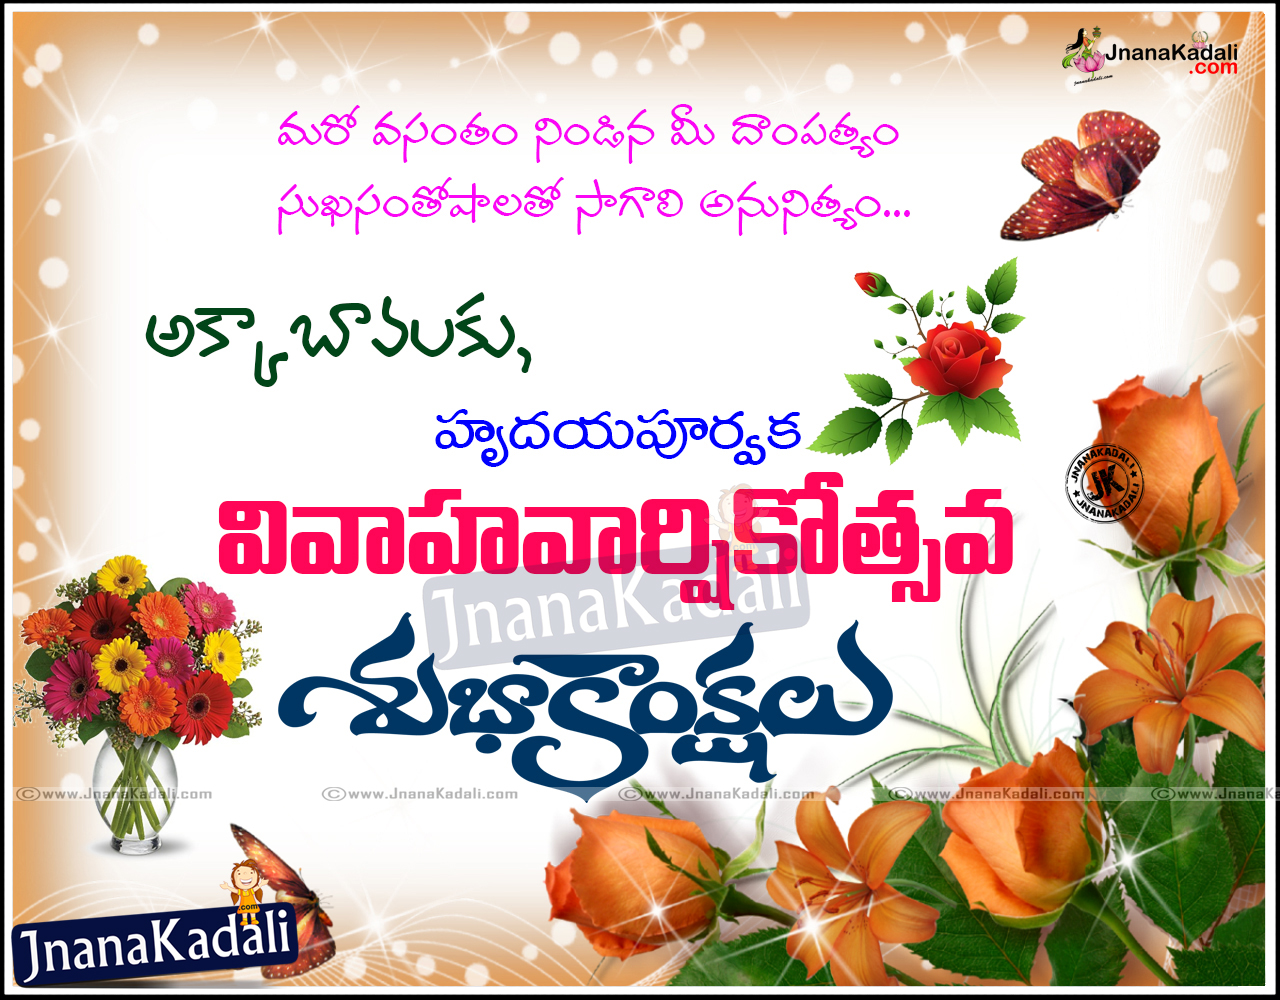 Happy Married Life Wishes Images In Telugu Shareimages